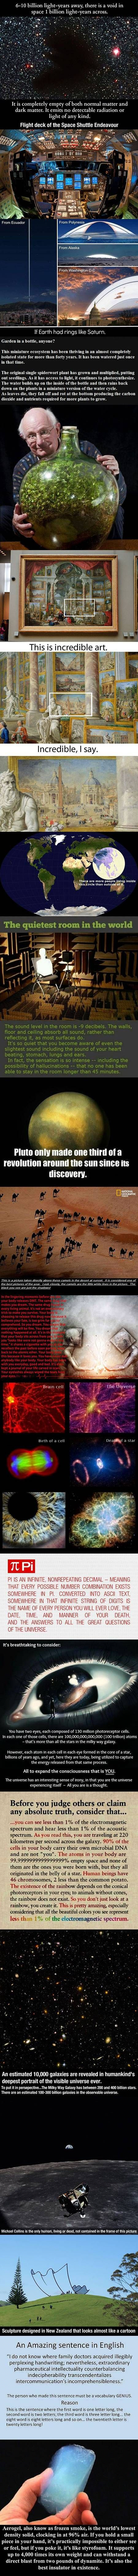 We've rounded up some incredible facts and images that you might've missed.: